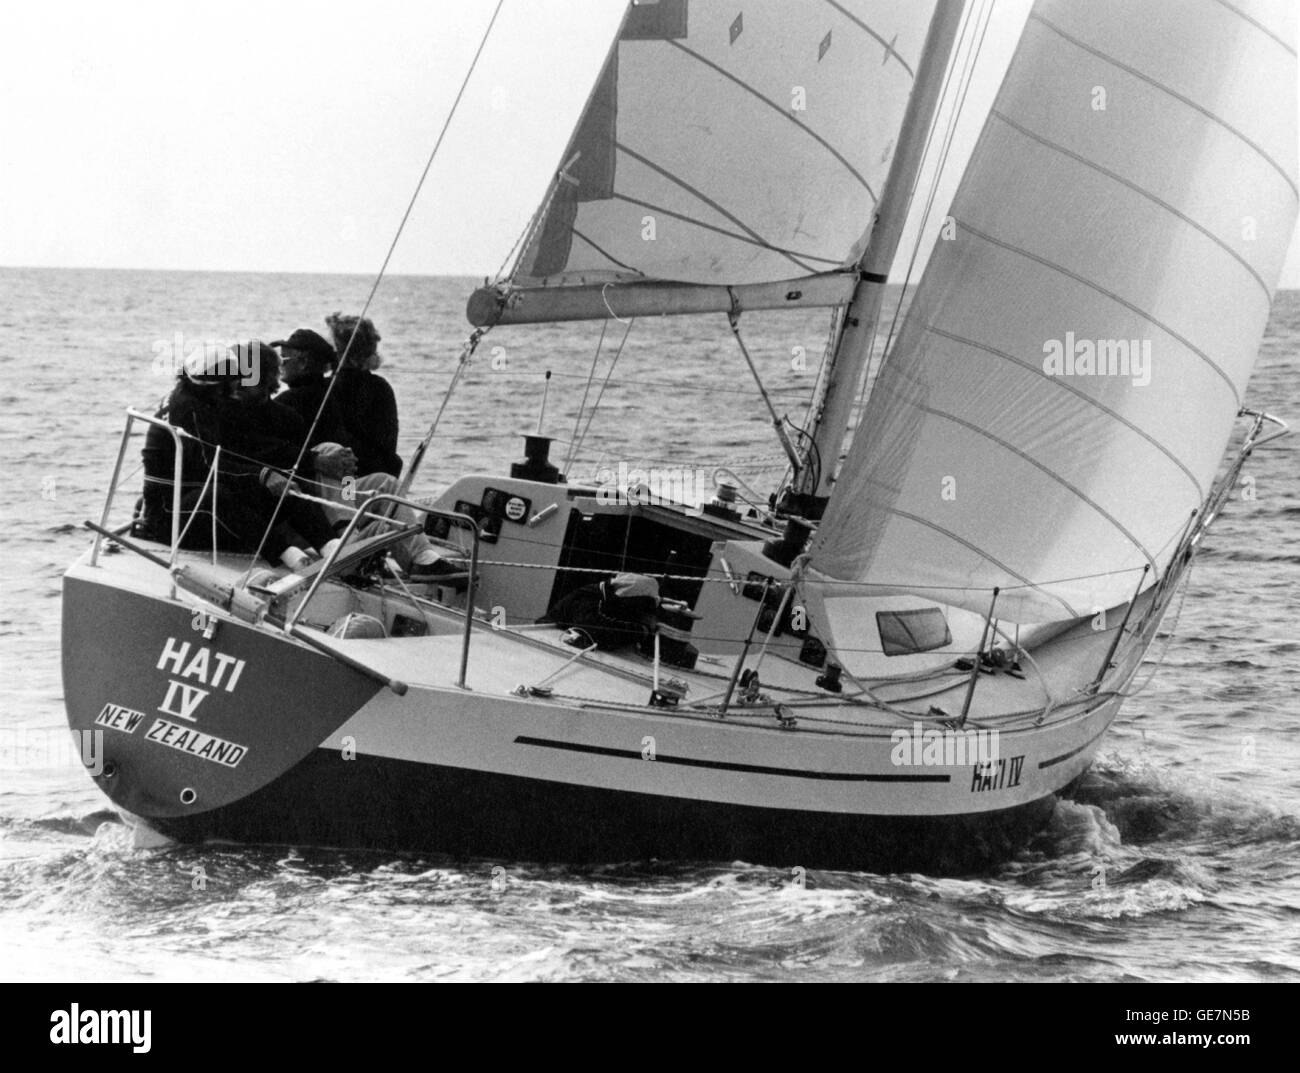 AJAX NEWS PHOTOS. 1974. TORBAY, ENGLAND. - WORLD ONE TON CUP CHAMPIONSHIPS - HATI IV, ONE OF THREE NEW ZEALAND YACHTS Stock Photo